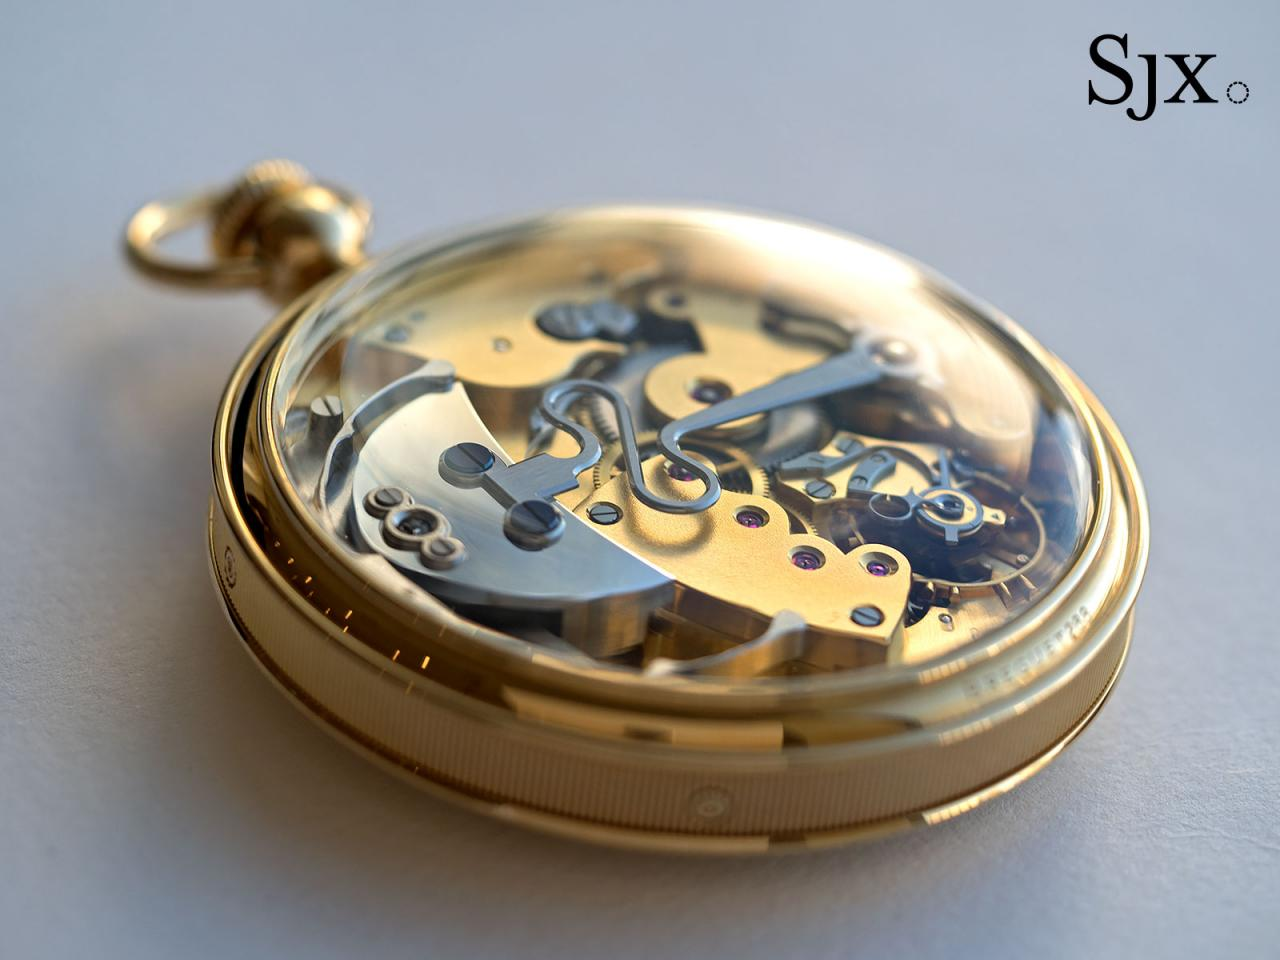 Breguet Souscription set pocket watch 11